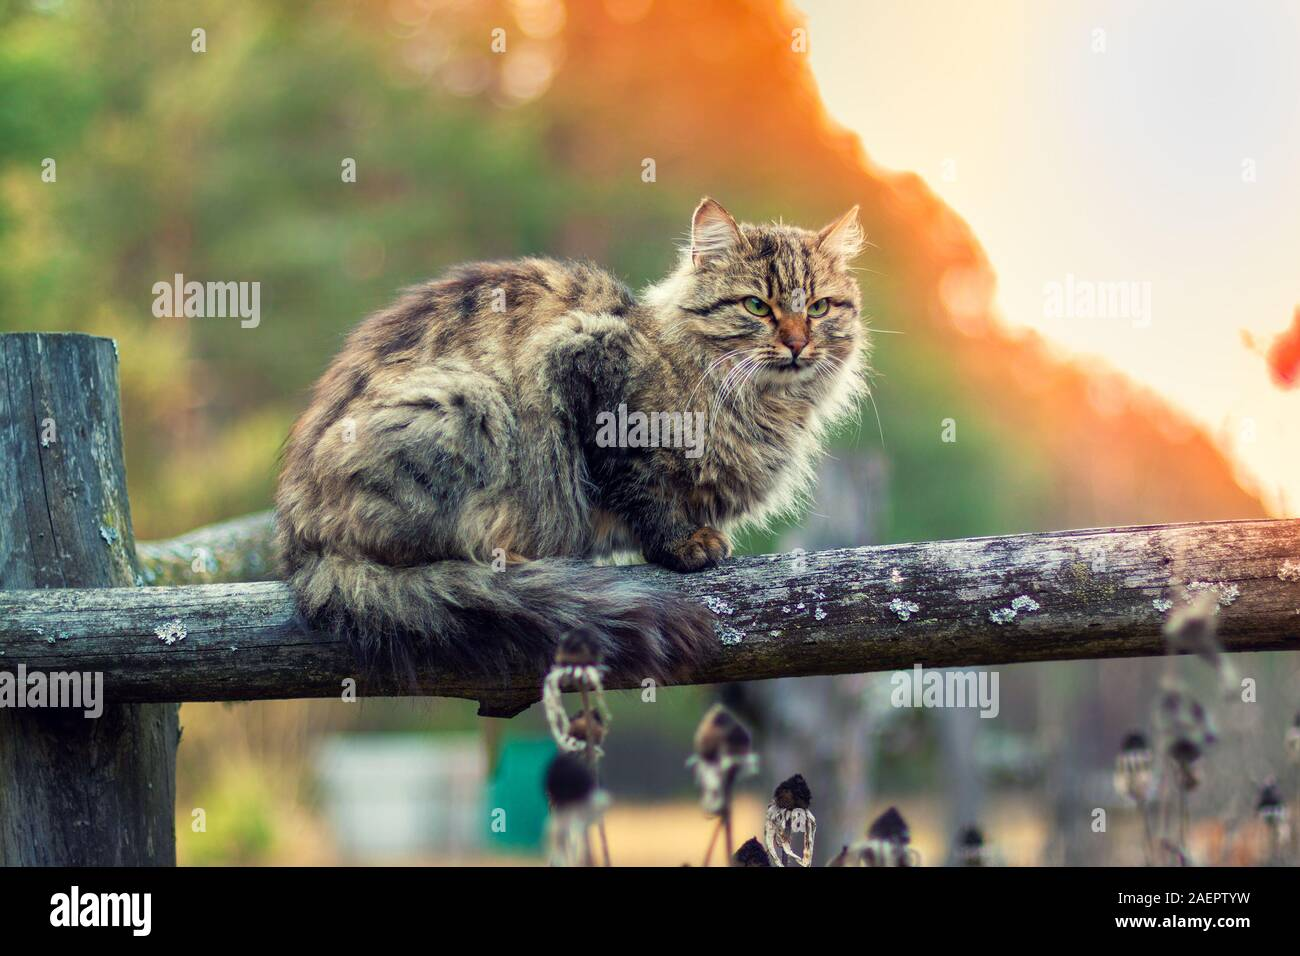 Siberian cat sitting on a wooden fence. Longhair cat outdoors in the countryside in summer Stock Photo